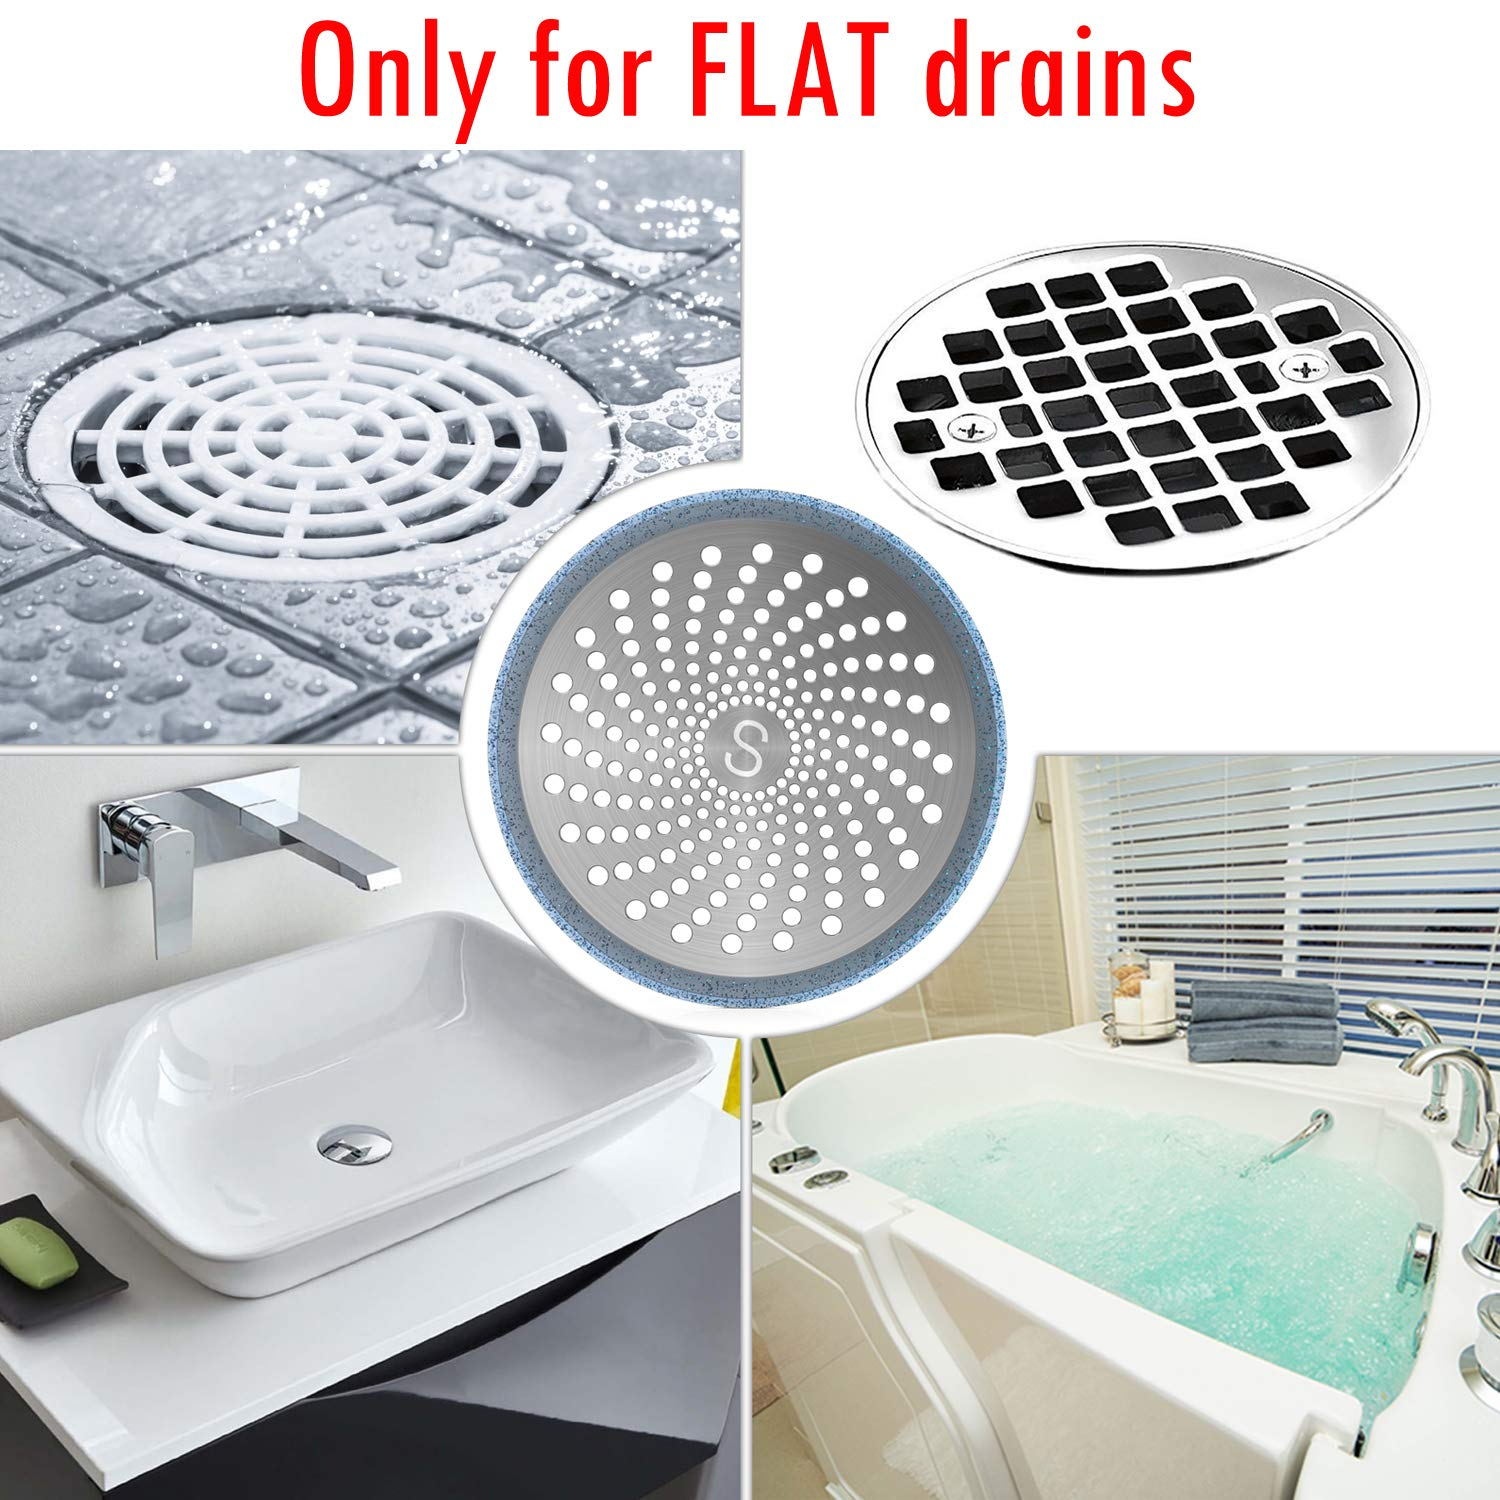 4.7 Inches Stainless Steel and Silicone Shower Stall Drain Protector STAN BOUTIQUE Drain Hair Catcher//Strainer//Trap//Stopper//Cover Blue Only for FLAT drains